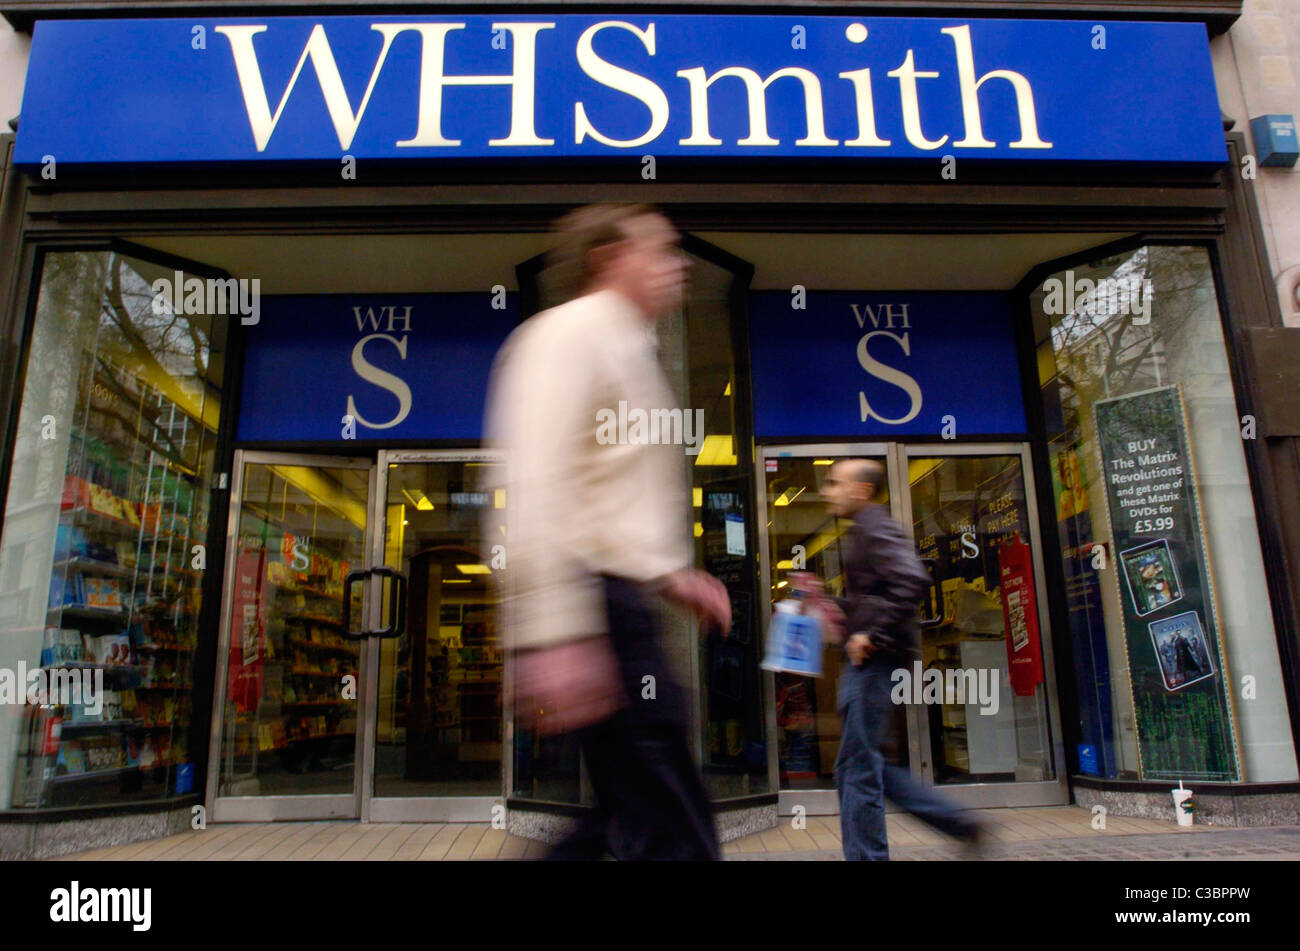 Exterior of a WH Smith store. - Stock Image